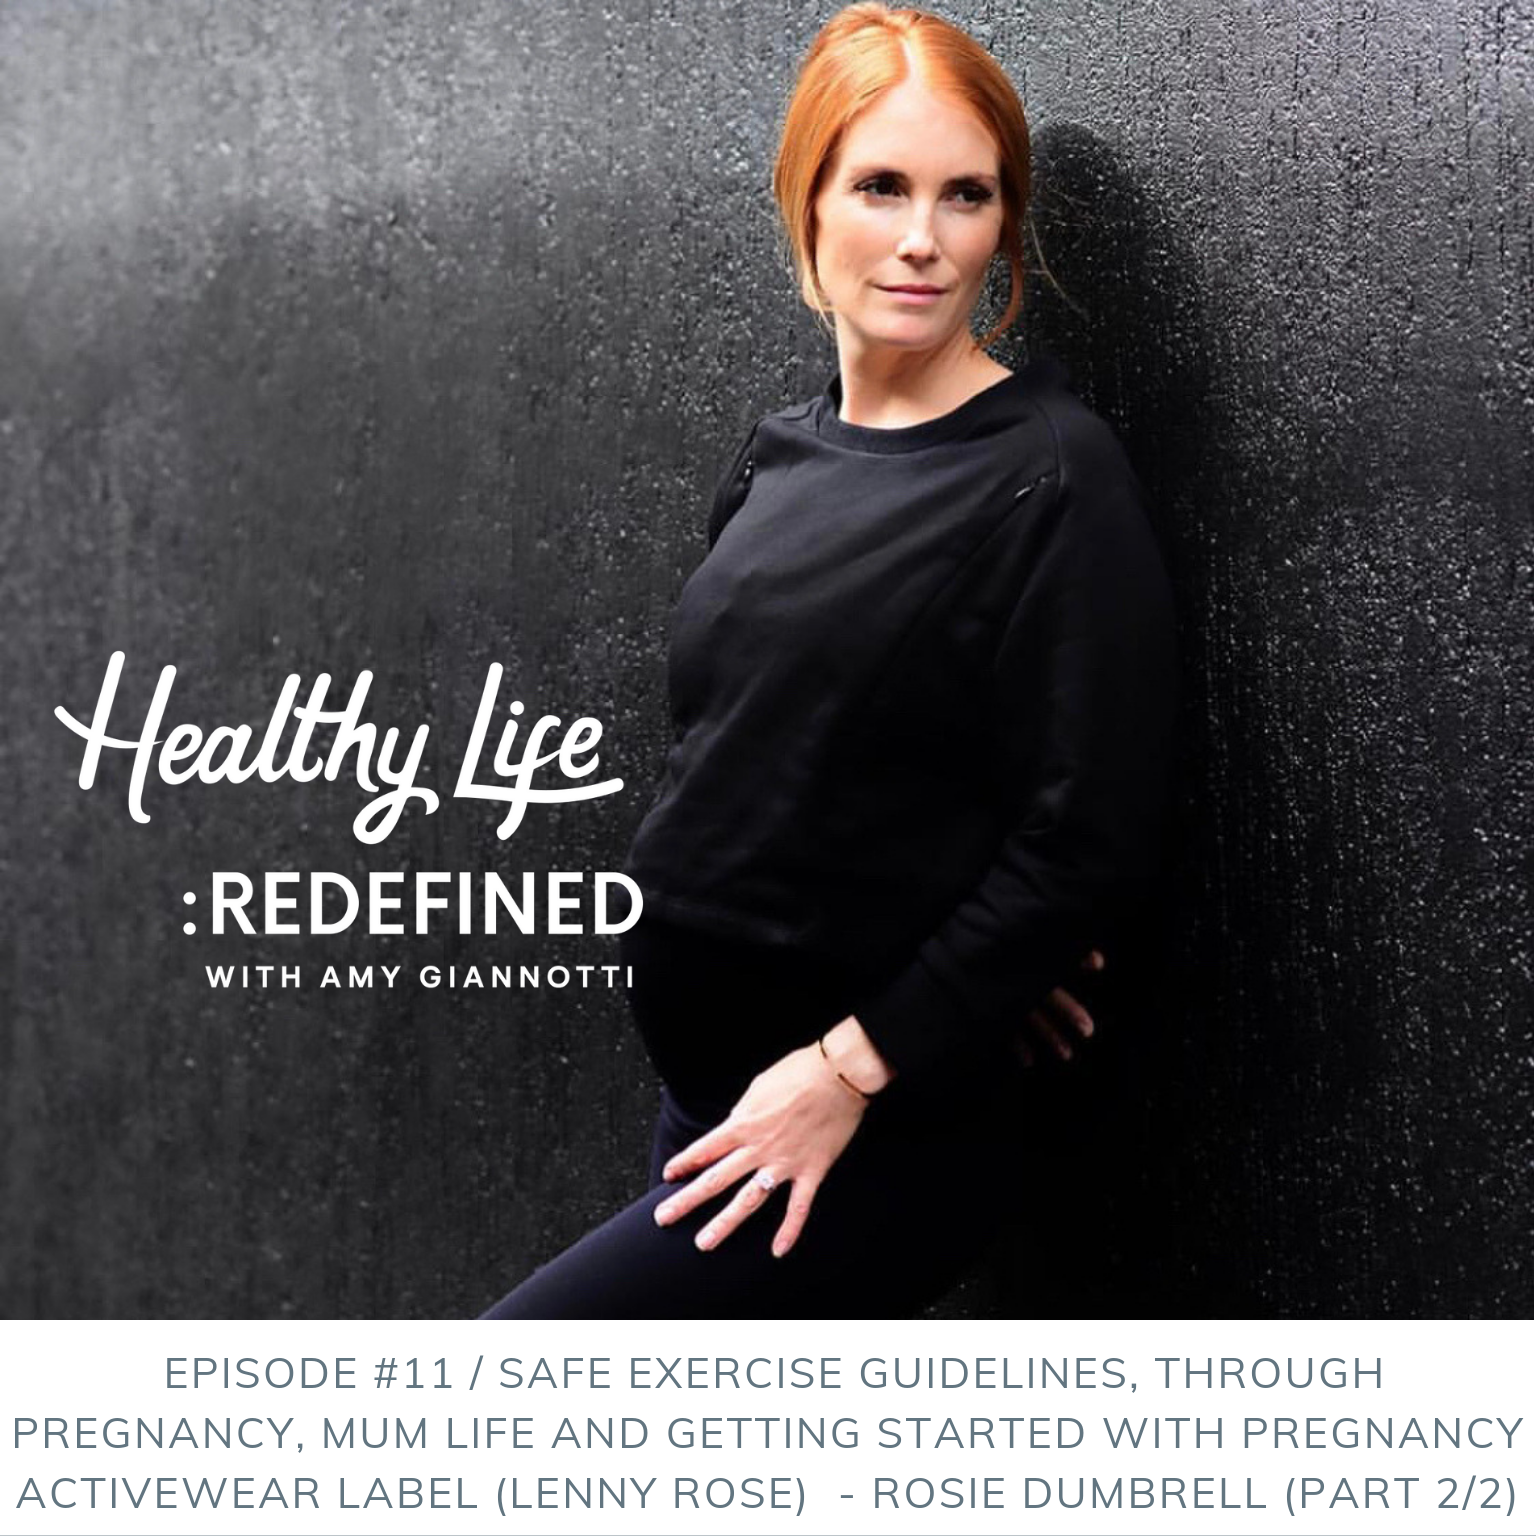 Podcast Episode 11: Safe Exercise Guidelines Through Pregnancy, Mum Life and Getting Started with Pregnancy Active Wear Label with Rosie Dumbrell (Part 2/2)